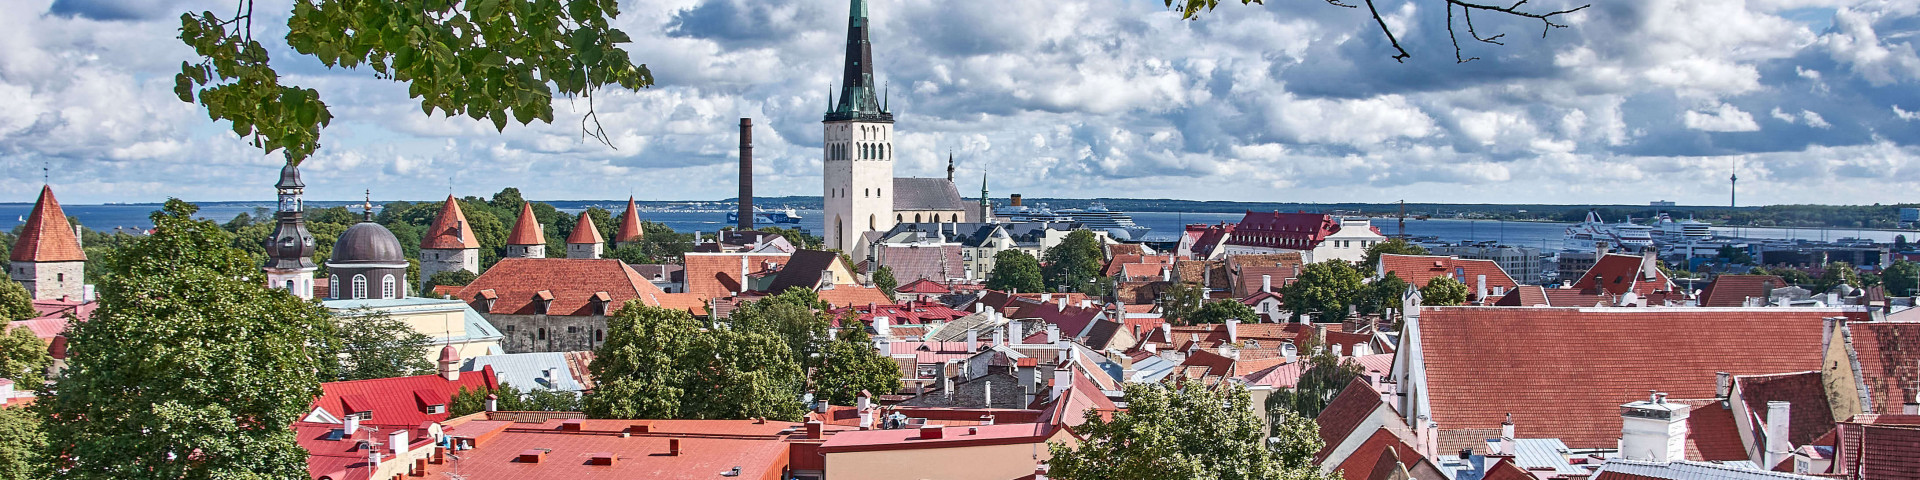 View from the Kohtuotsa viewing platform north-east of the Toompea Castle; Baltic road trip itinerary